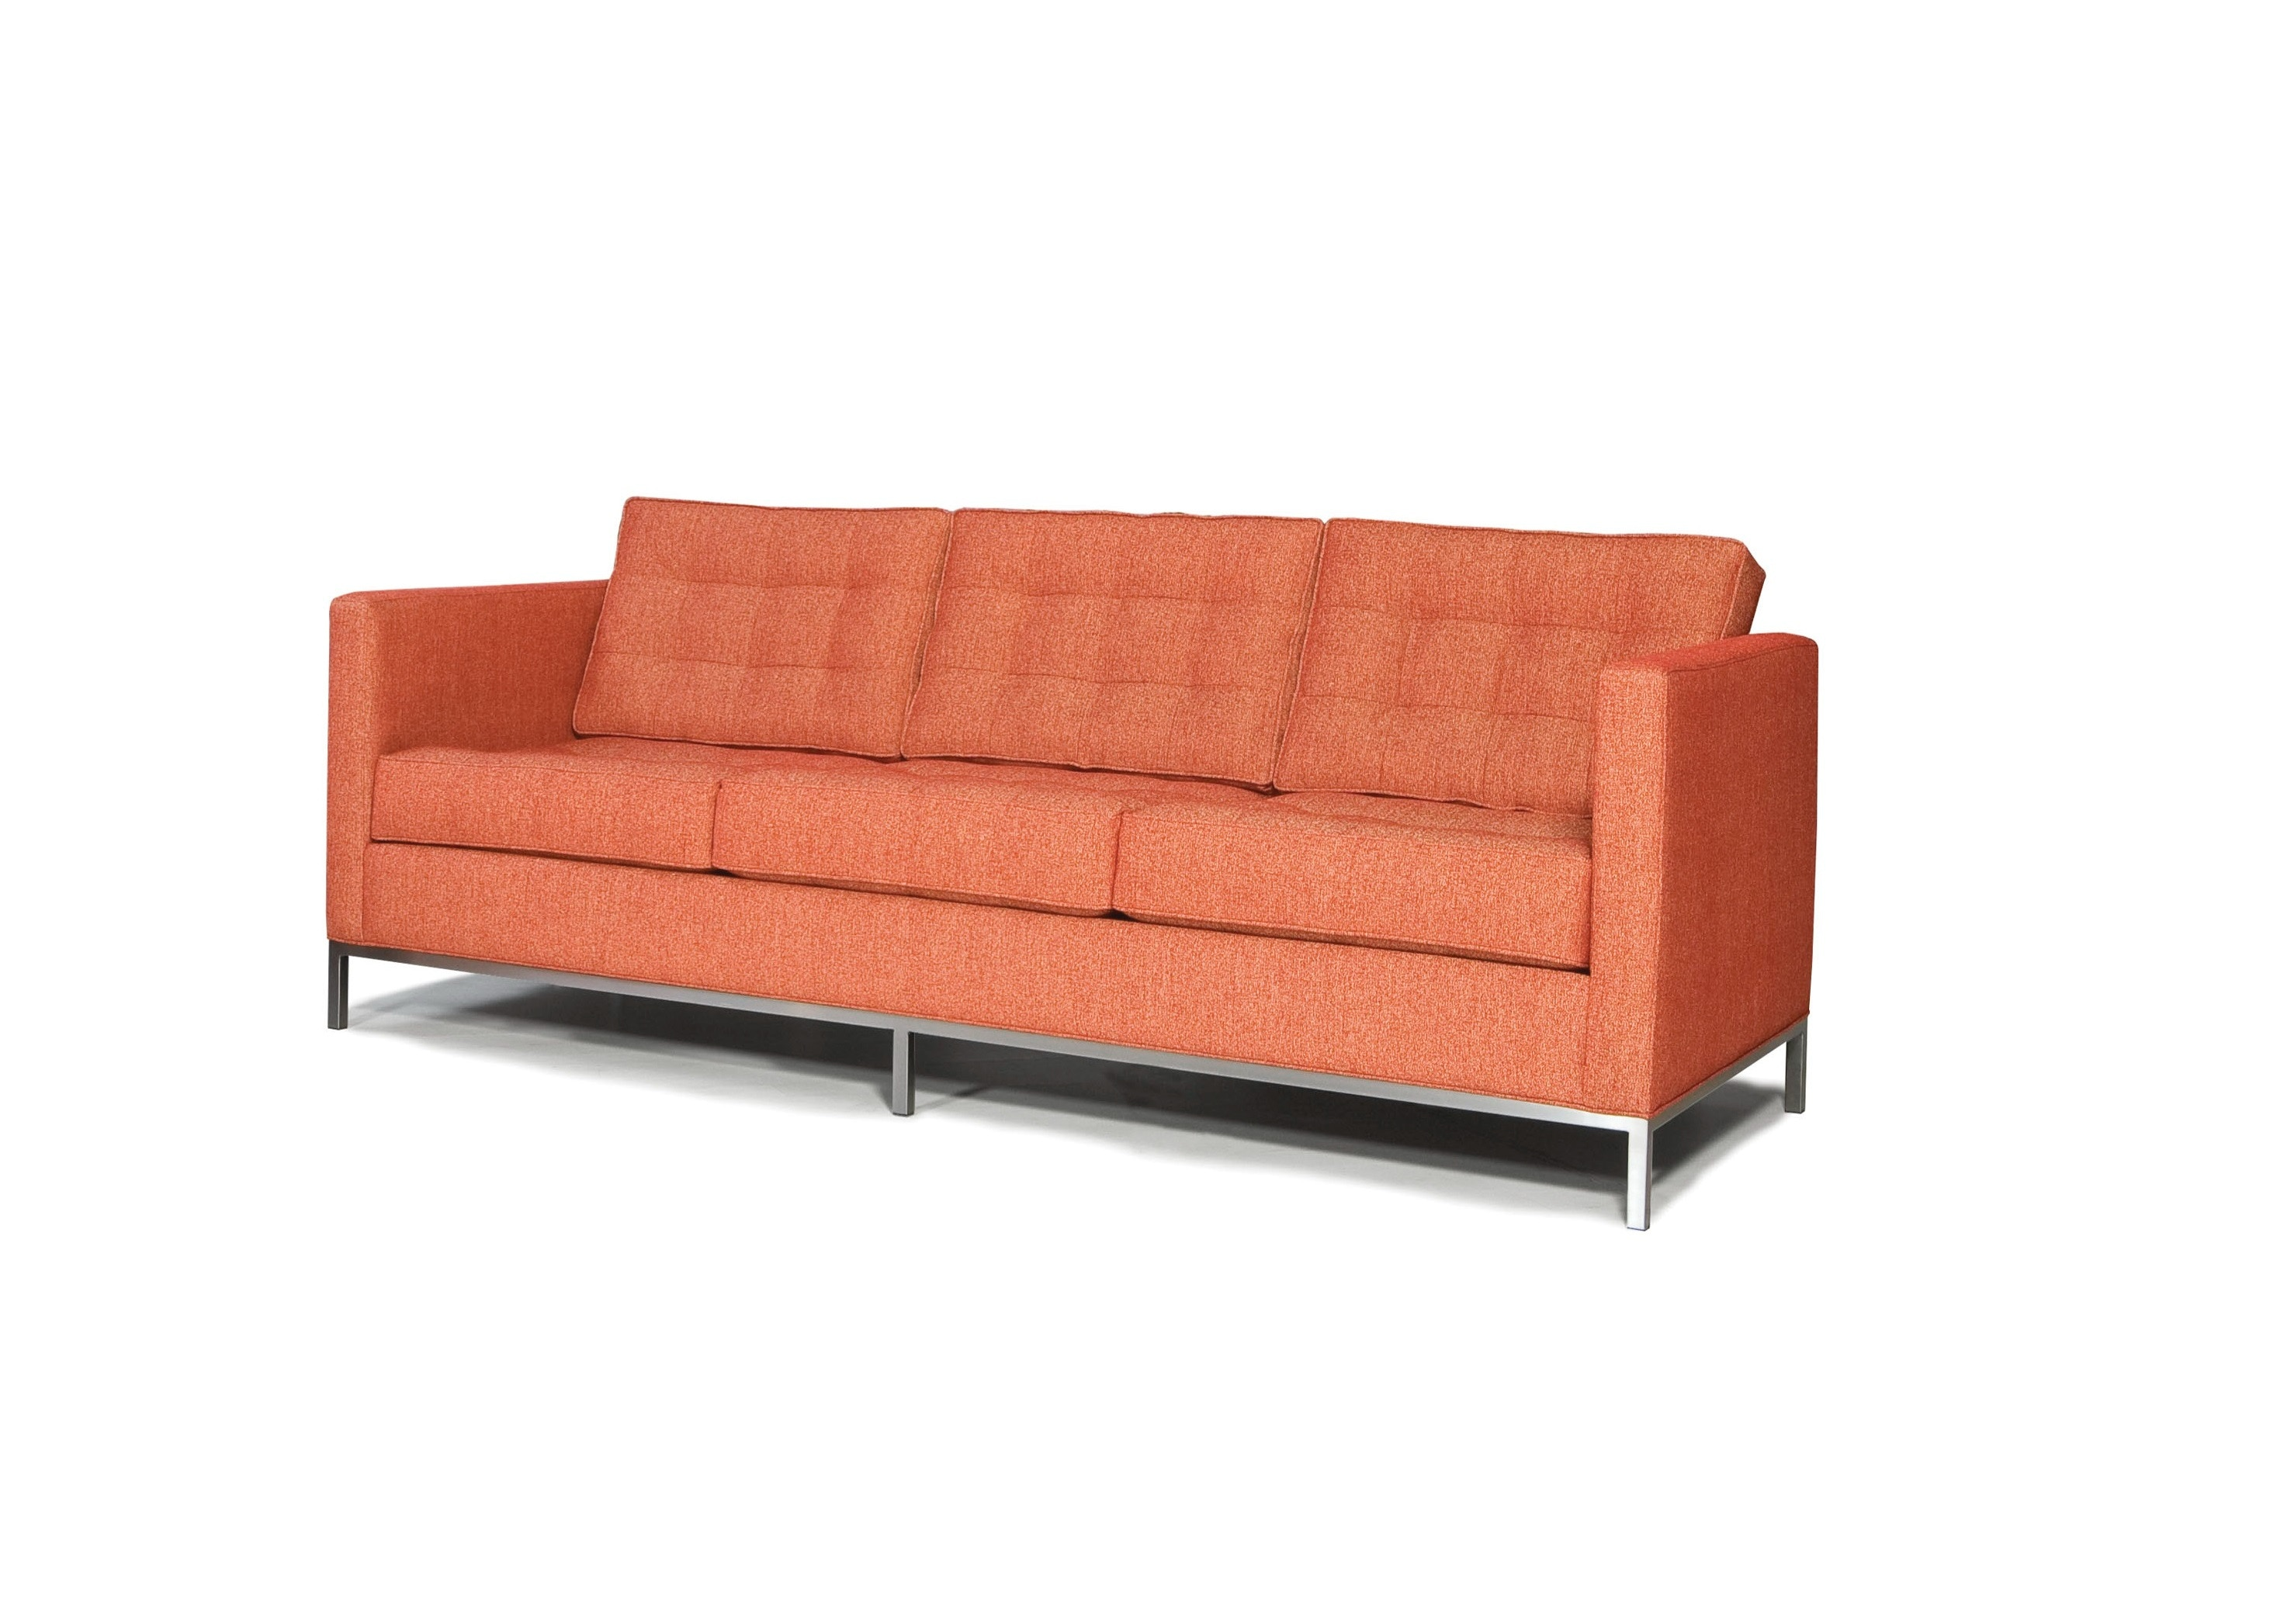 wooden sofa legs south africa 2 piece sectional covers wood cly for sofas with interior